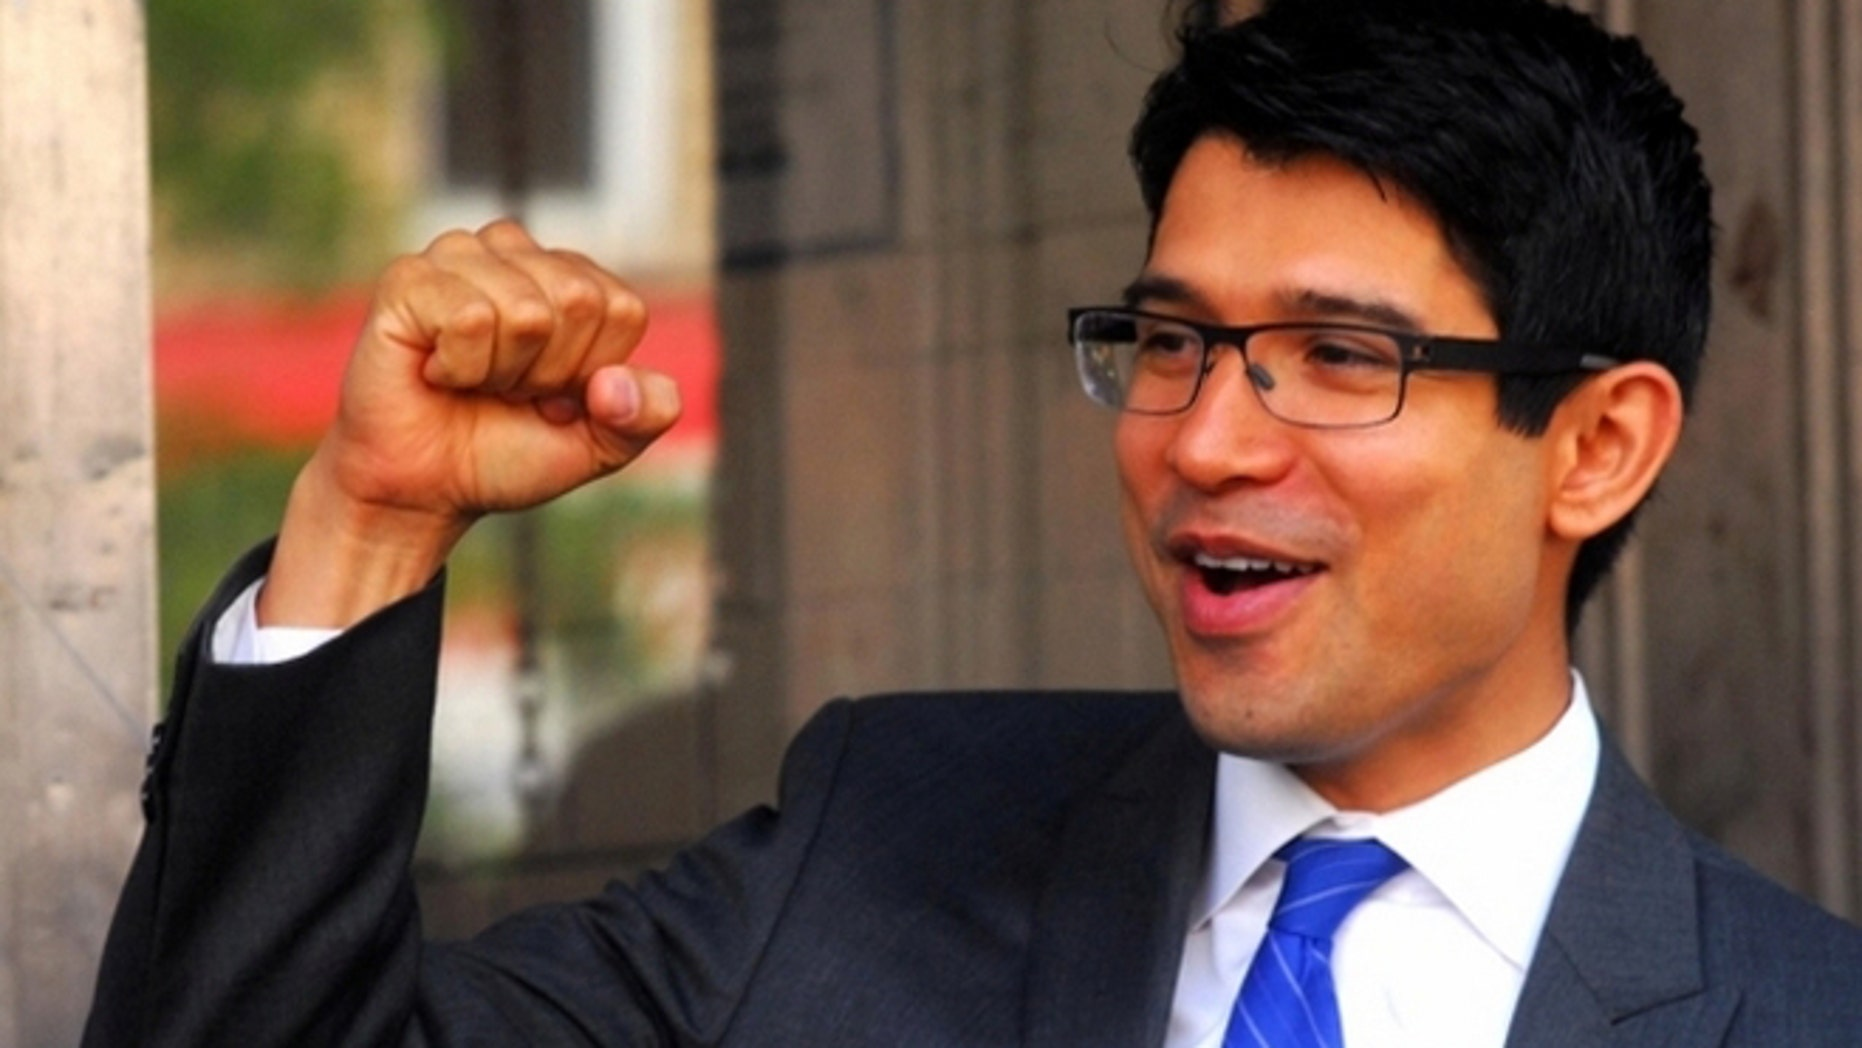 Carlos Menchaca, New York City's first Mexican-American elected official.